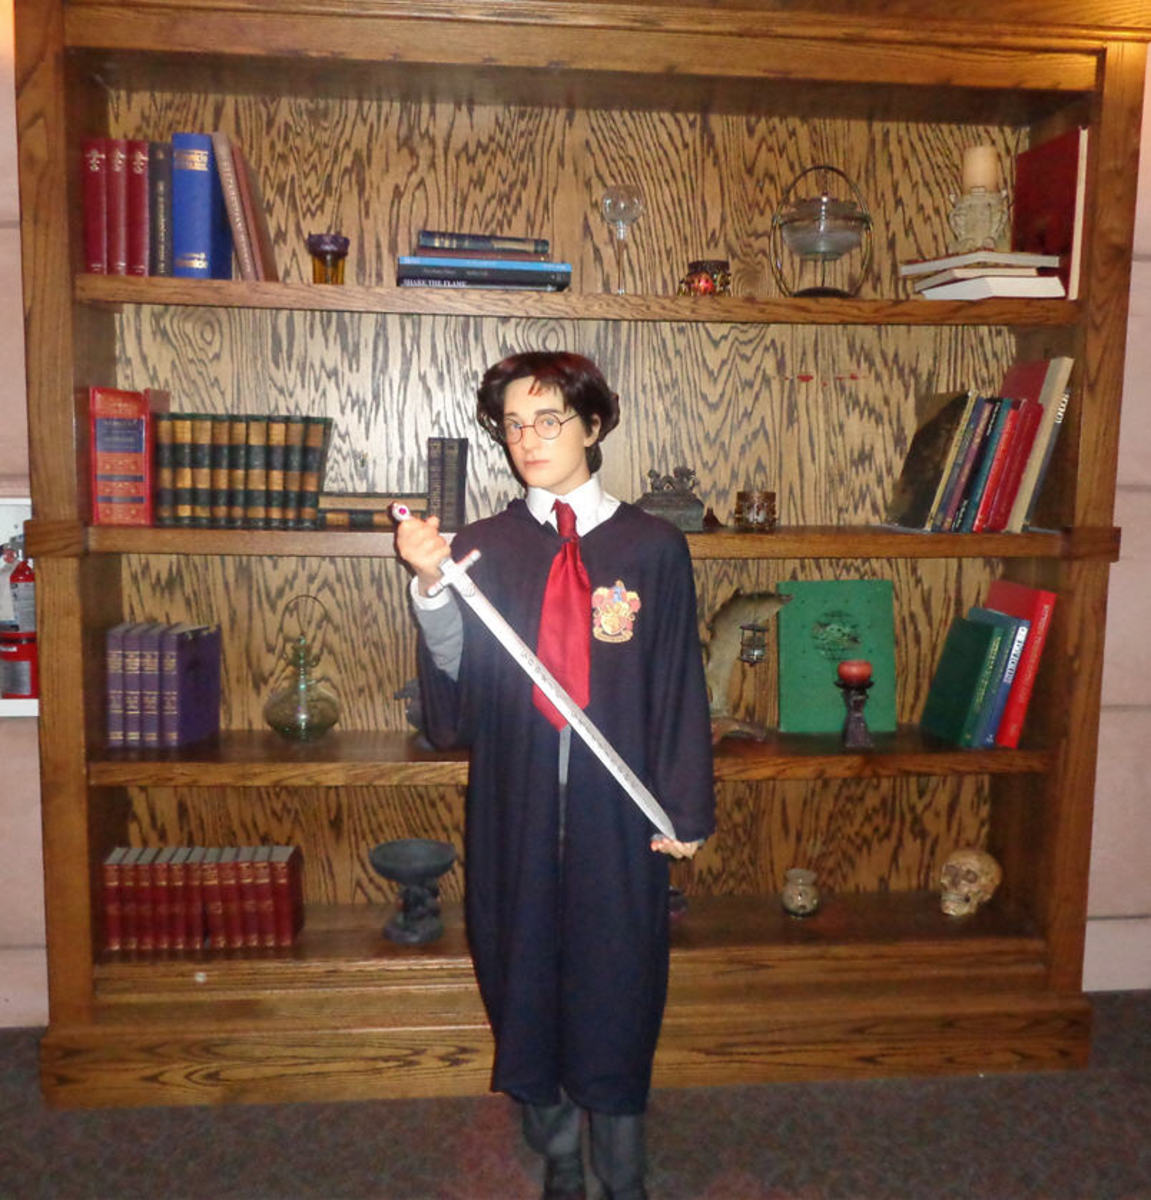 madame-tussauds-wax-museum-new-york-and-louis-tussauds-wax-museum-in-niagara-falls-canada-history-and-review